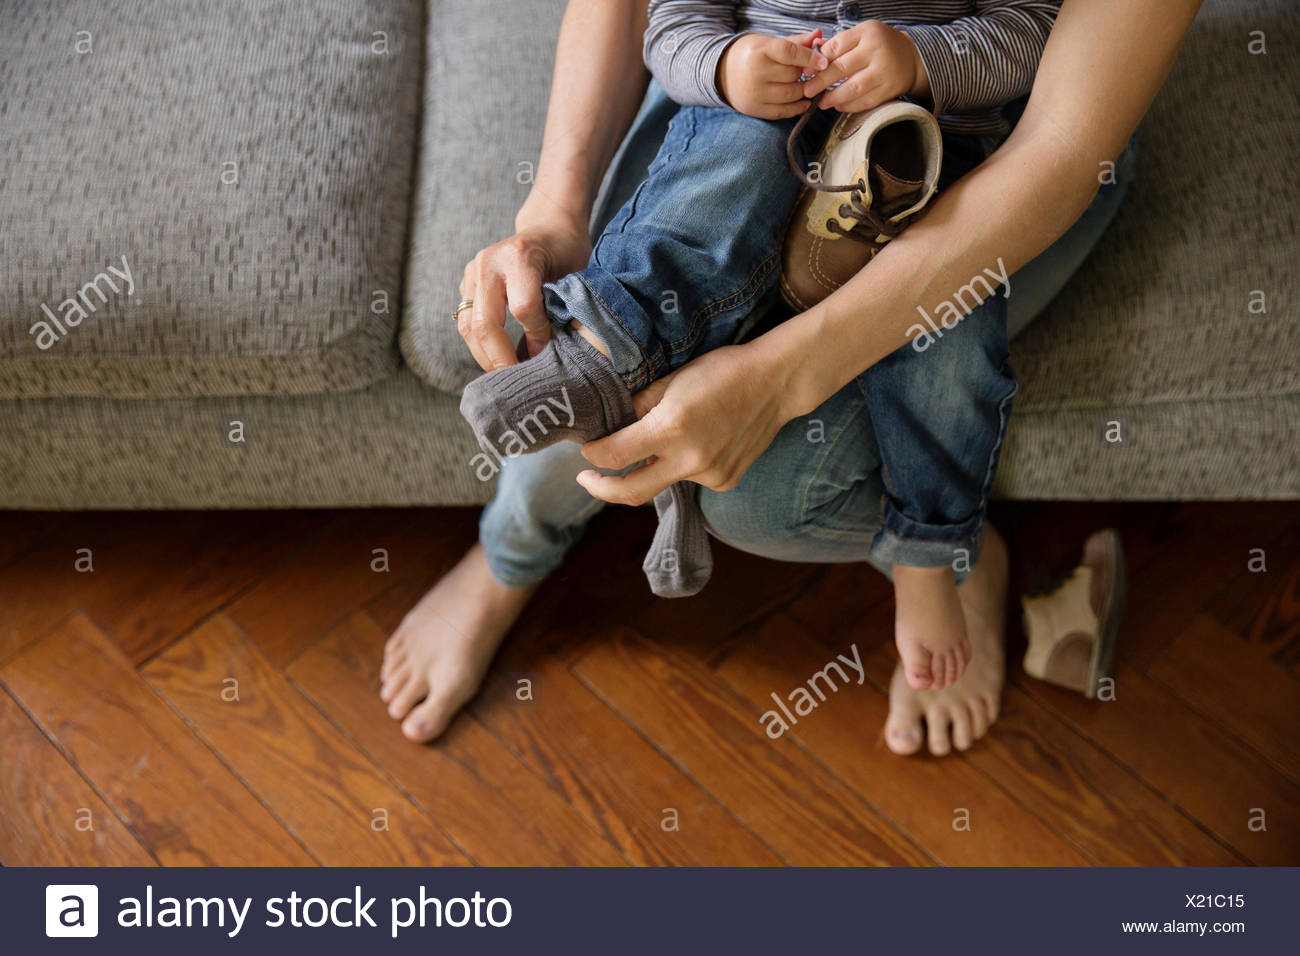 Mother's hands helping toddler putting his socks and shoes on - Stock Image